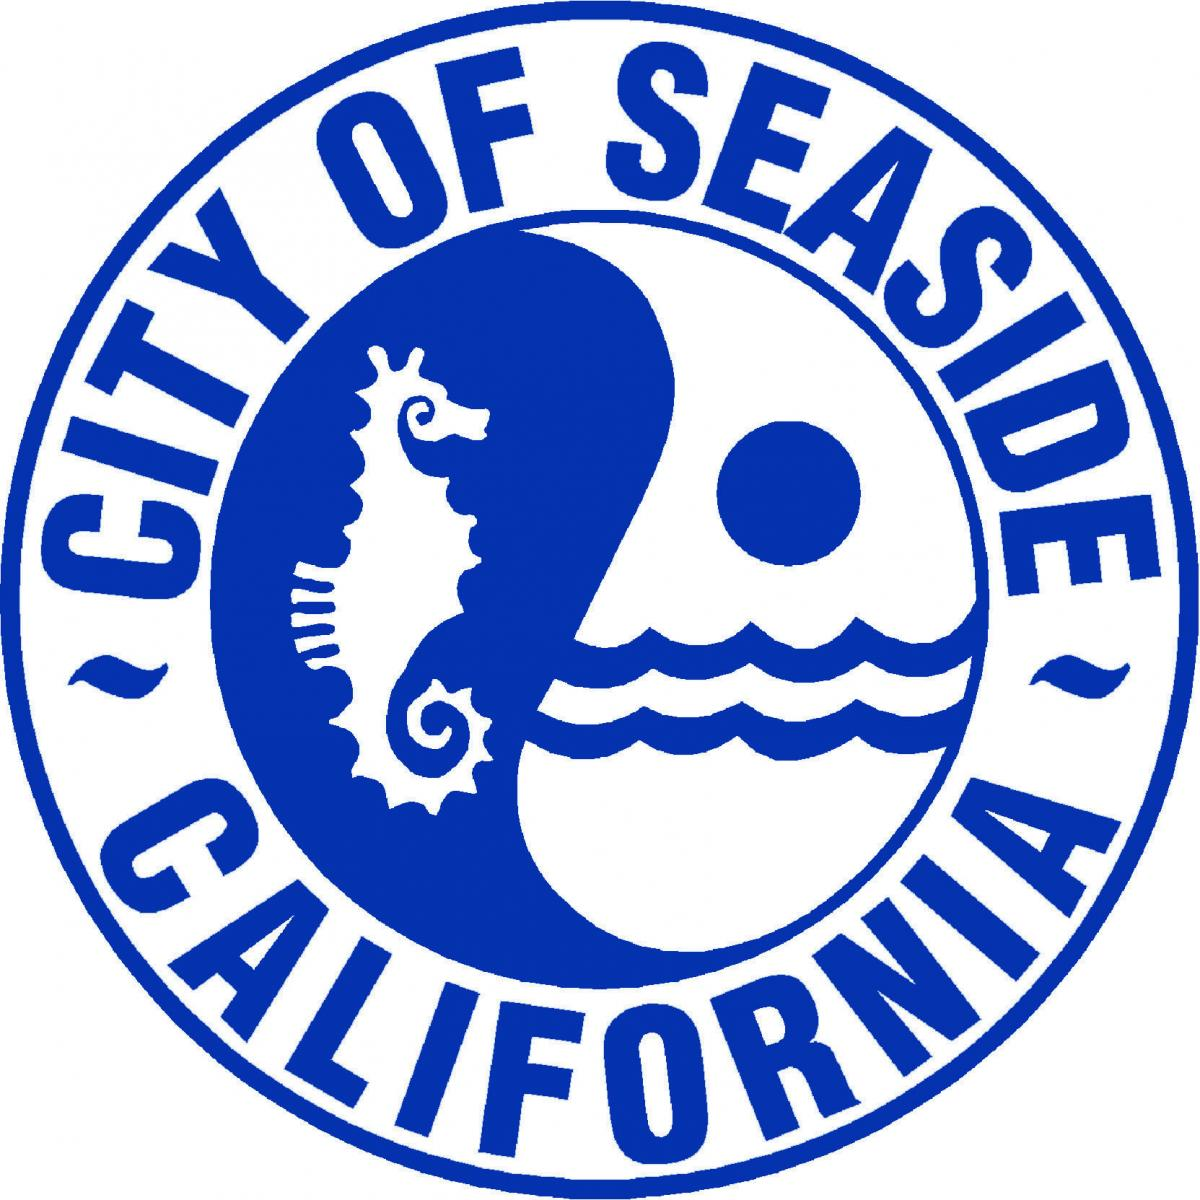 City of Seaside, CA